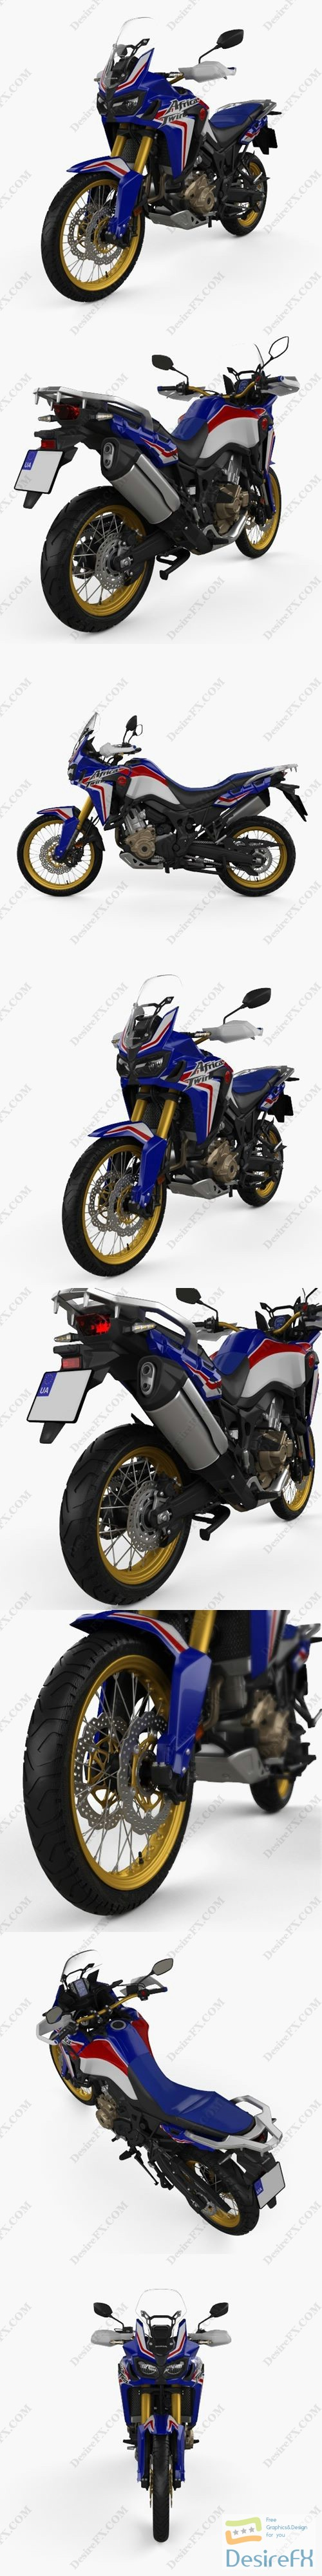 3d-models - Honda CRF 1000L Africa Twin ABS 2019 3D Model